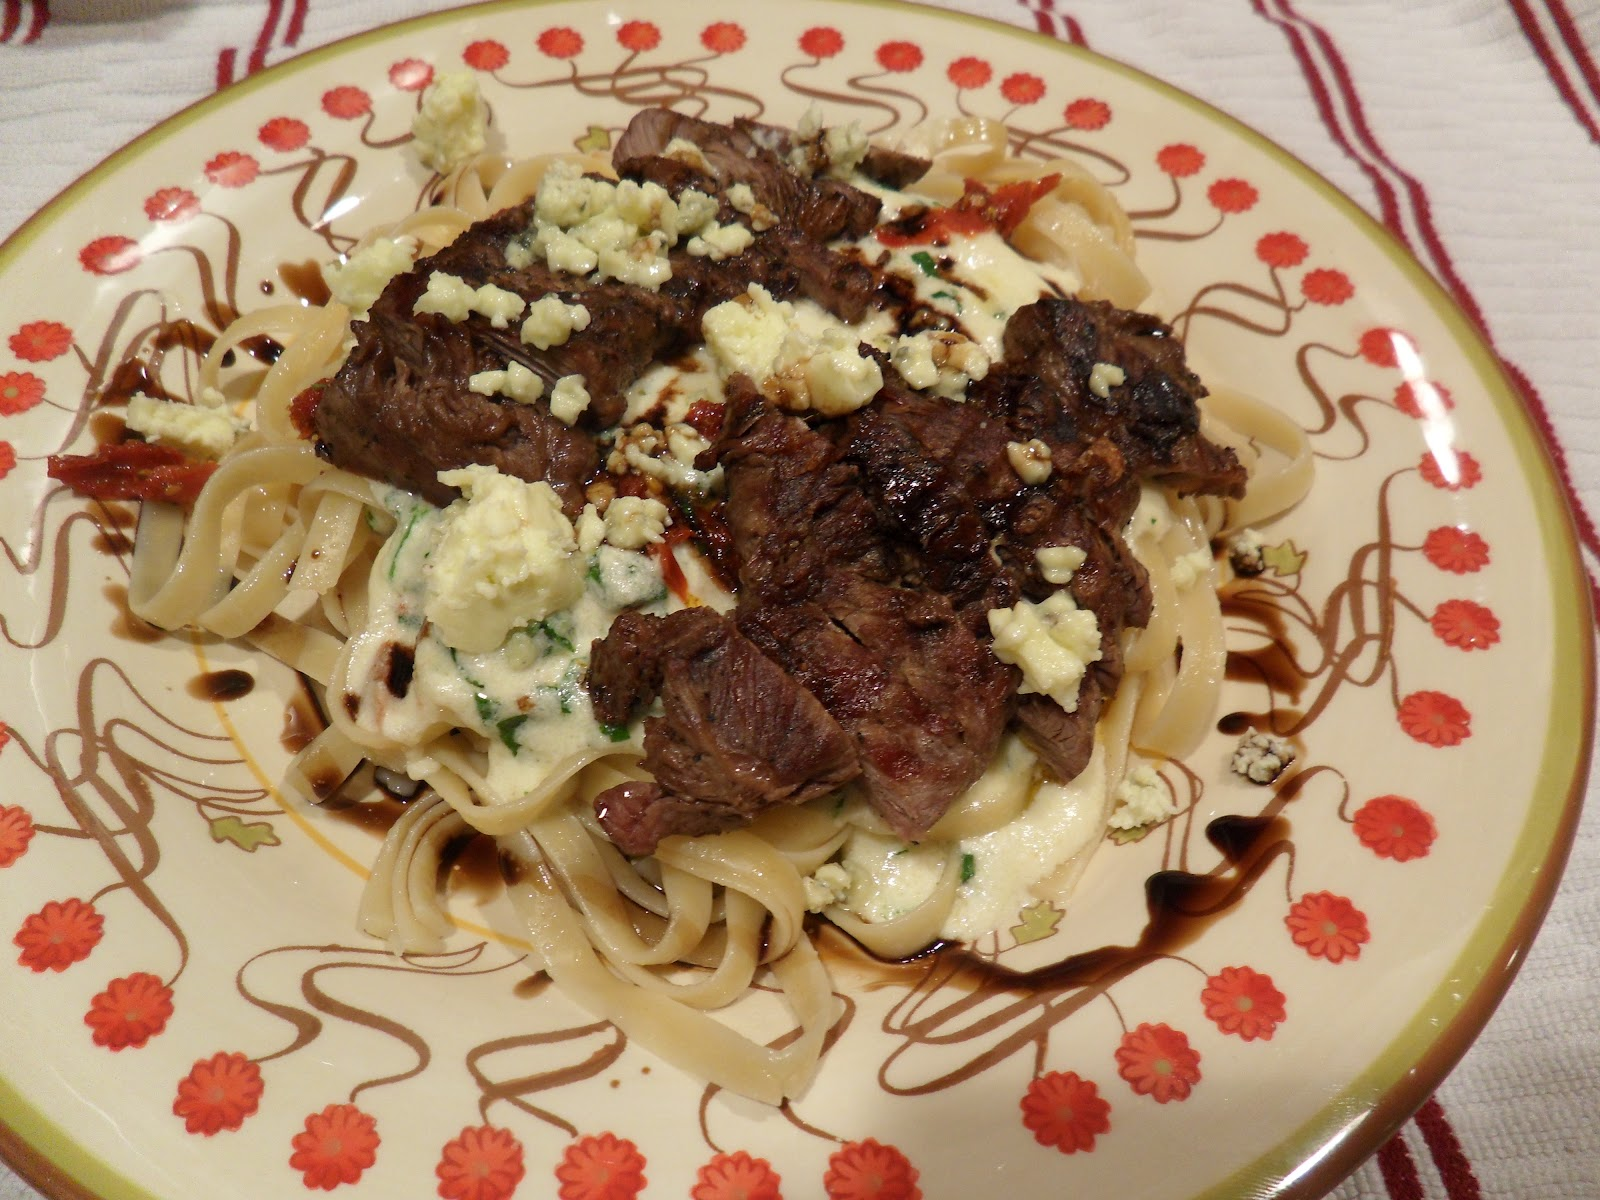 Made To Order Steak Gorgonzola Alfredo Olive Garden Copy Cat Recipe